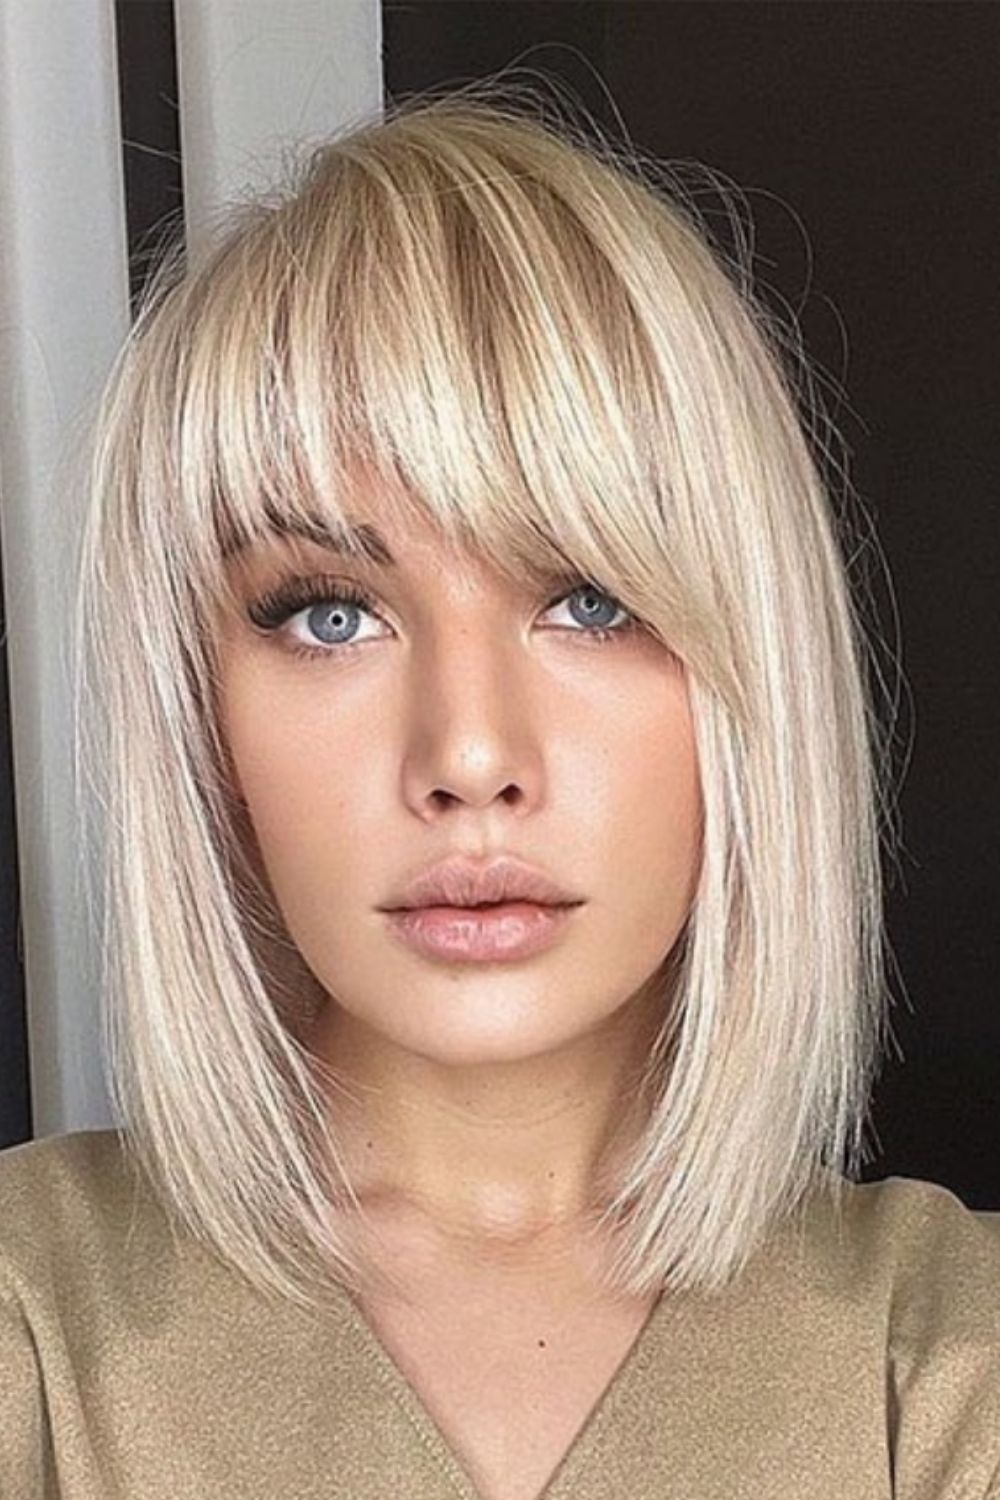 How to style bob hair with bangs 2021?